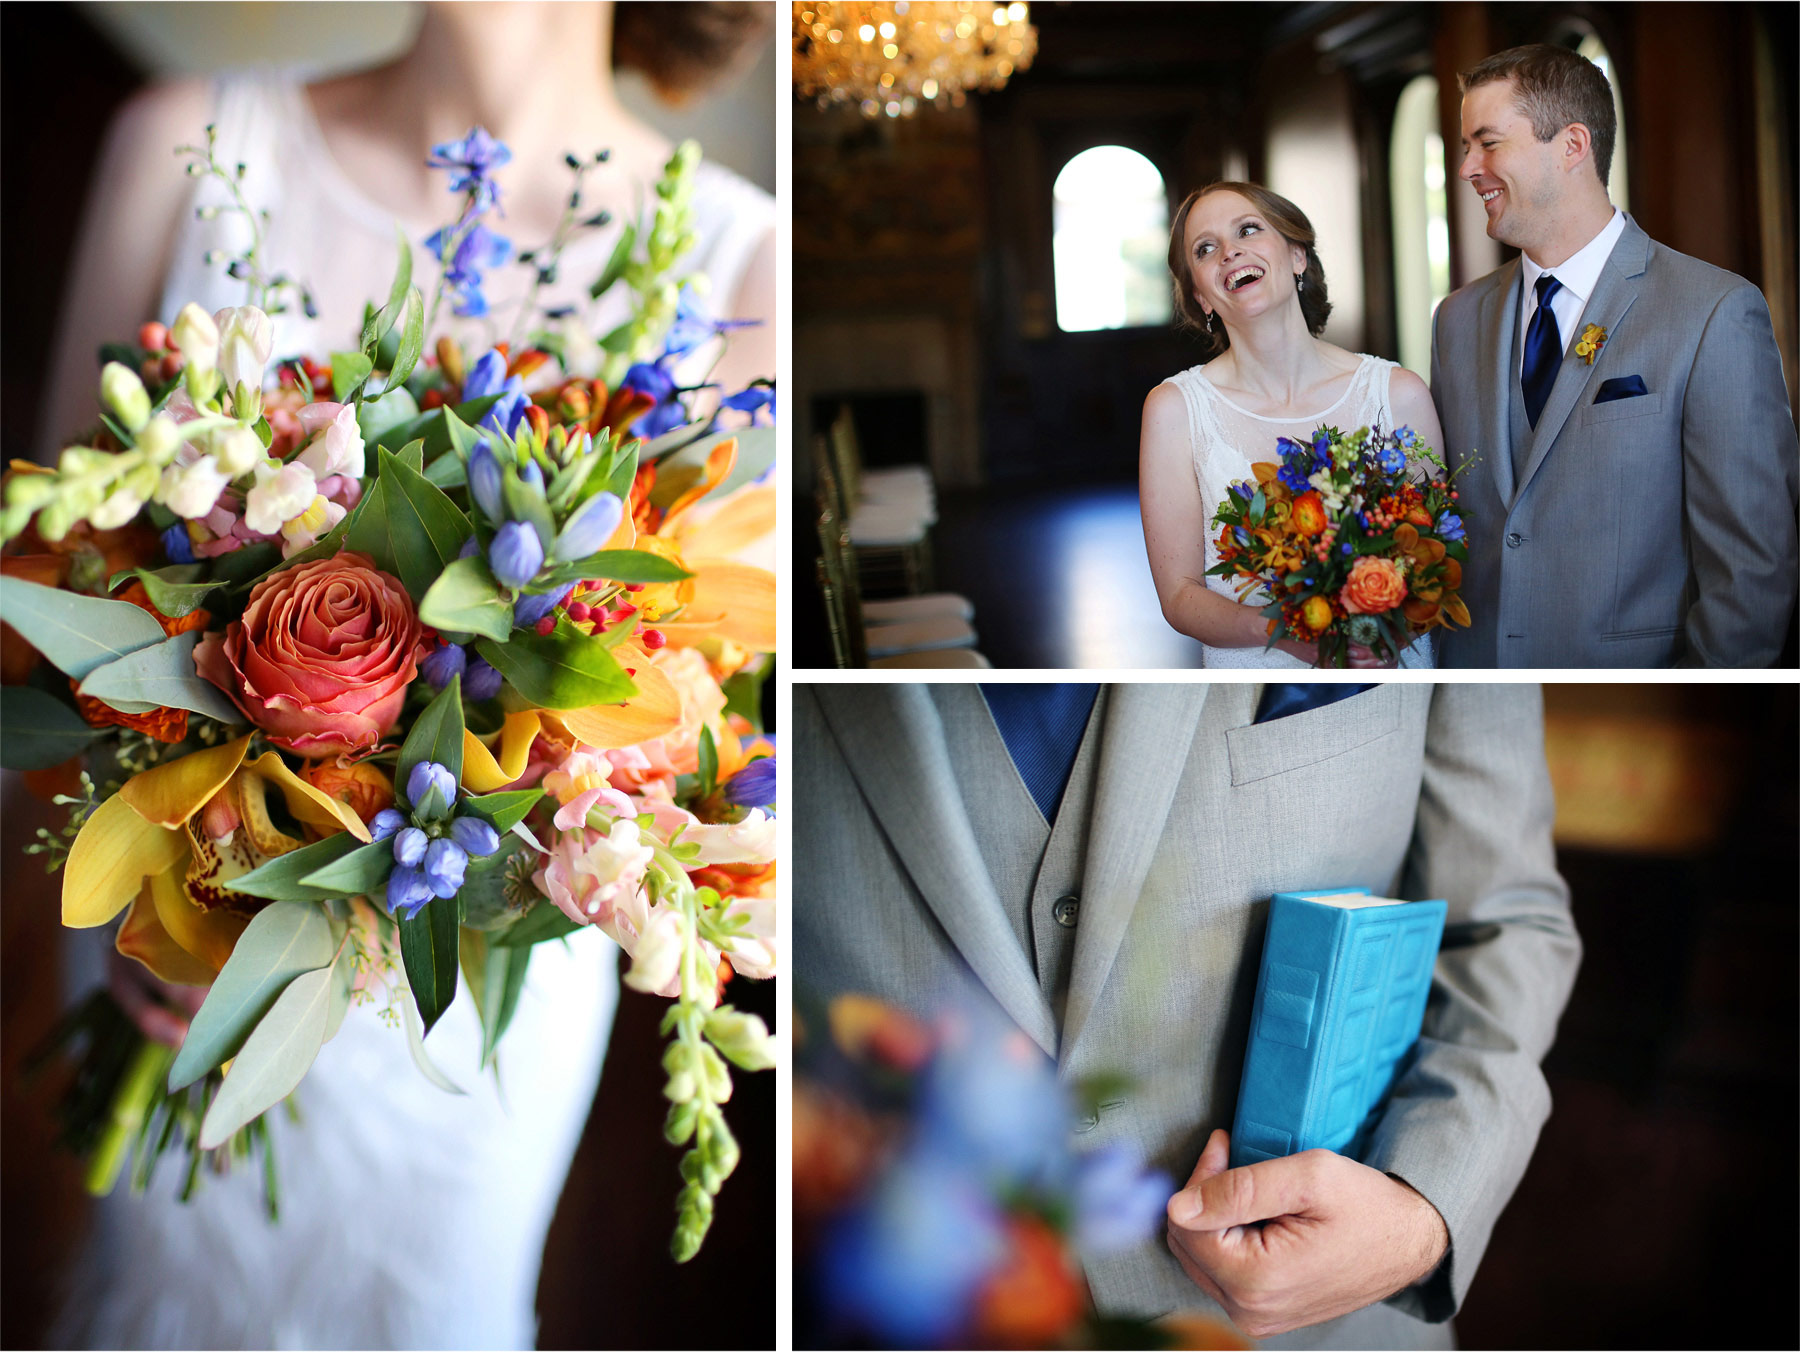 09-Minneapolis-Minnesota-Wedding-Photographer-by-Andrew-Vick-Photography-Summer-Semple-Mansion-Bride-Groom-Flowers-Bible-Book-Laughter-First-Meeting-Look-Stephanie-and-Robert.jpg